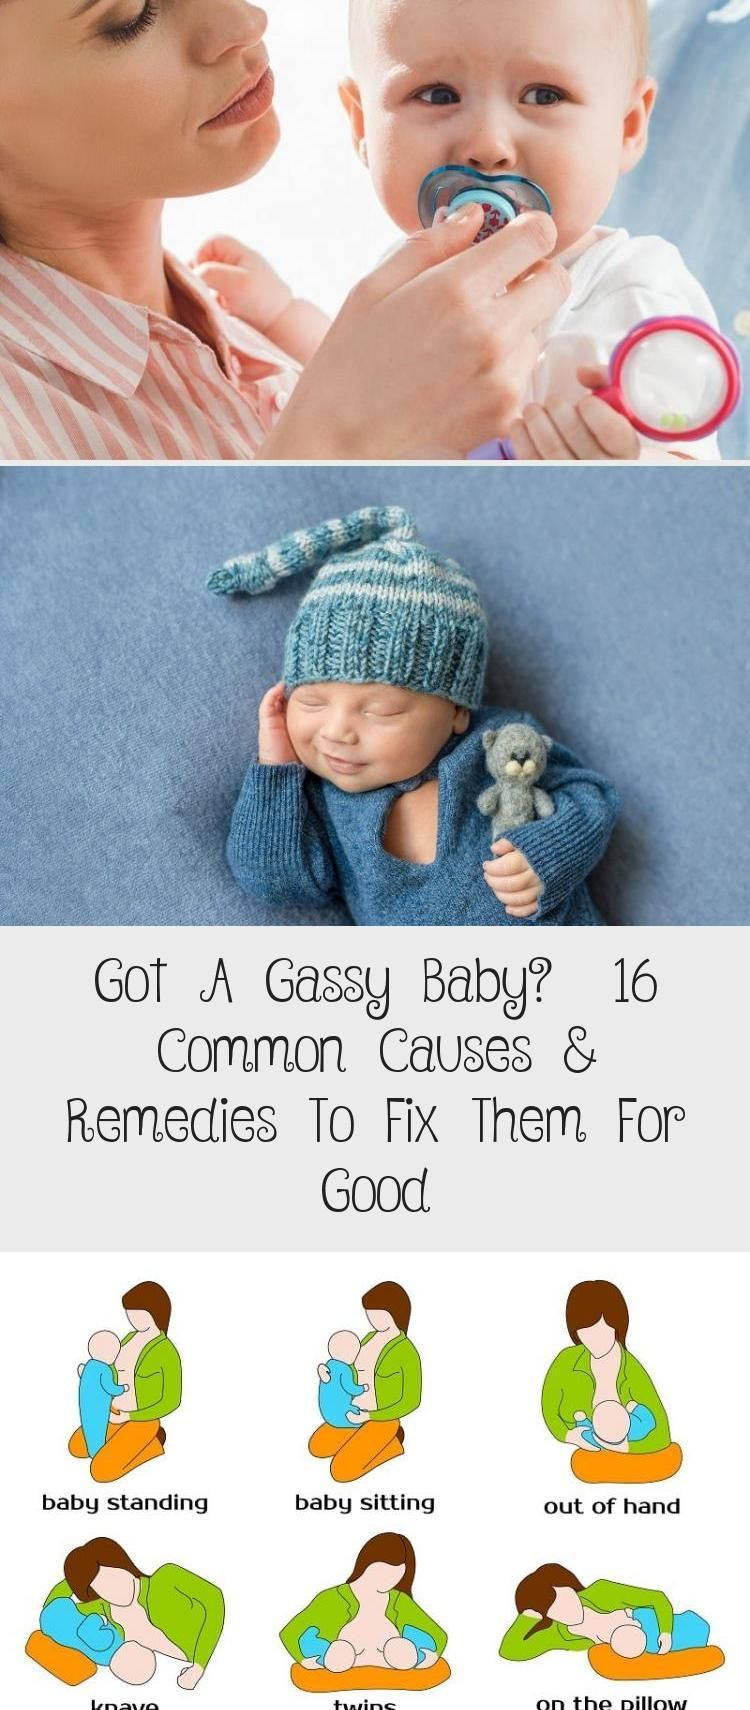 Babies are gaseous - it could make your baby cry inconsolably - colic - and s ...